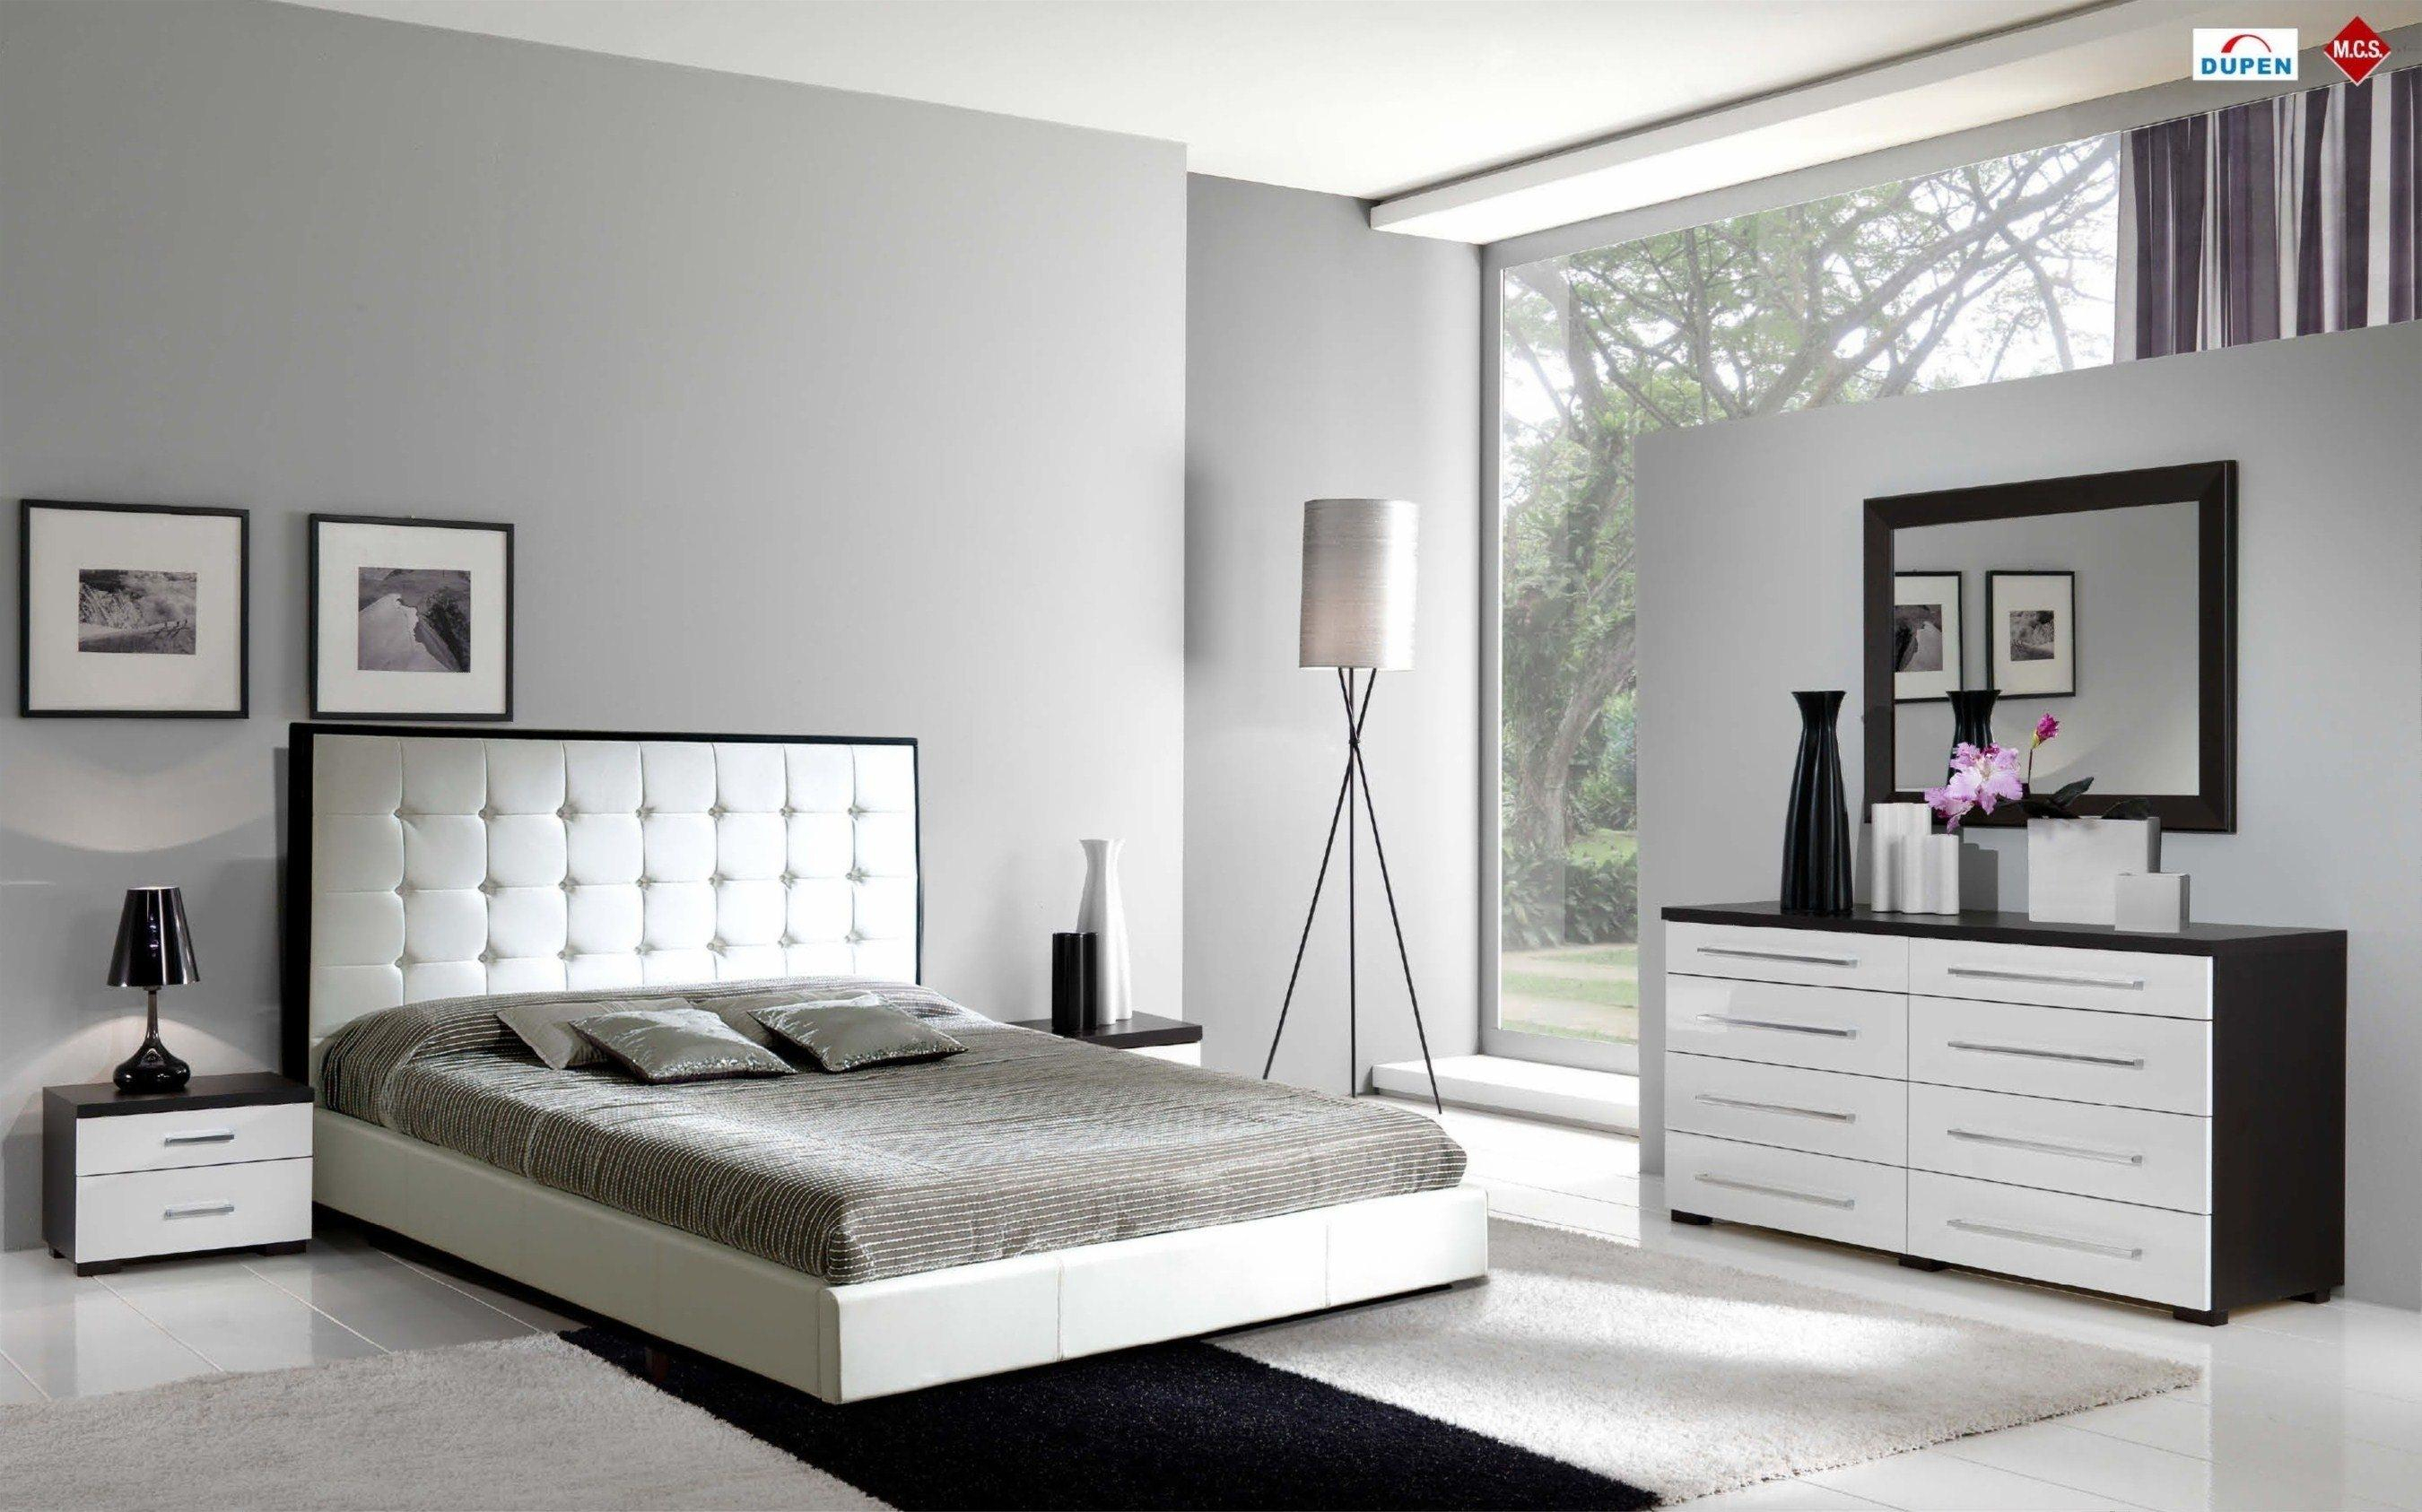 Luxury Furniture Bedroom Sexy Bedroom Ideas Bedroom Wall within 14 Some of the Coolest Ways How to Craft Sexy Modern Bedroom